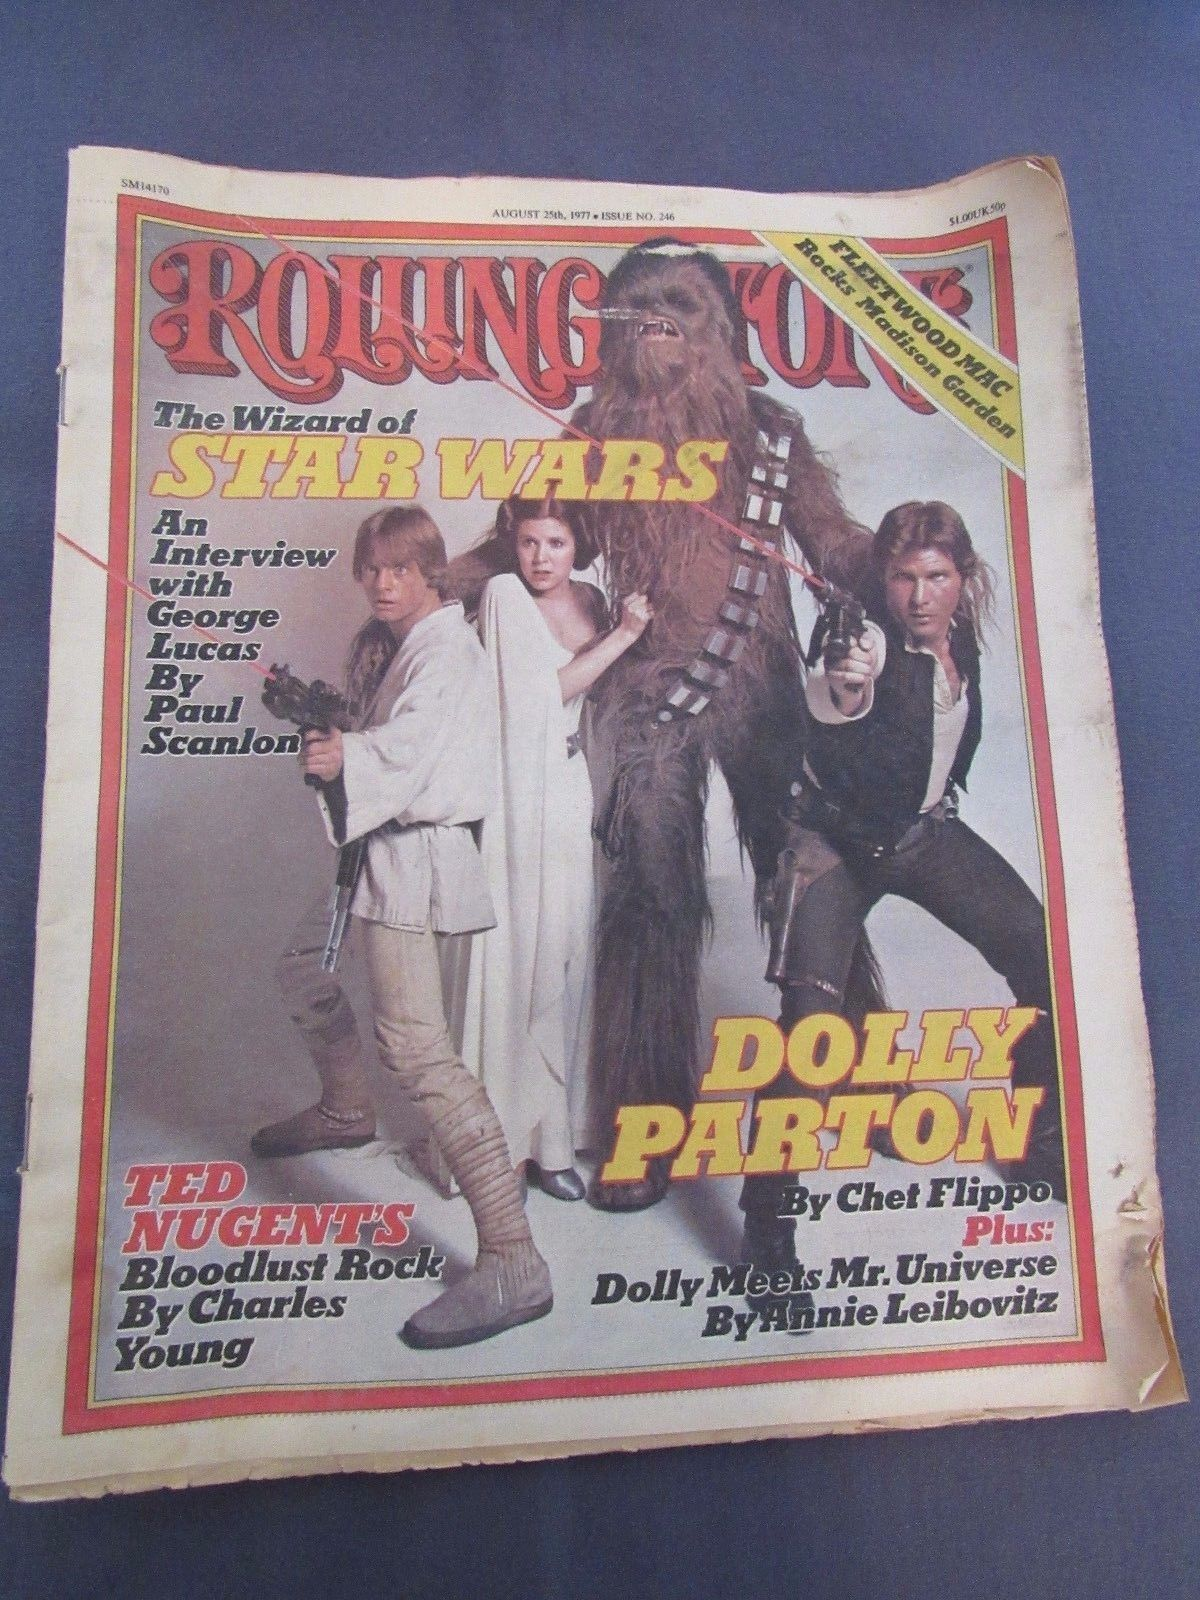 Rolling Stone Magazine No. 246 Star Wars 1977 Aug 25 George Lucas Interview